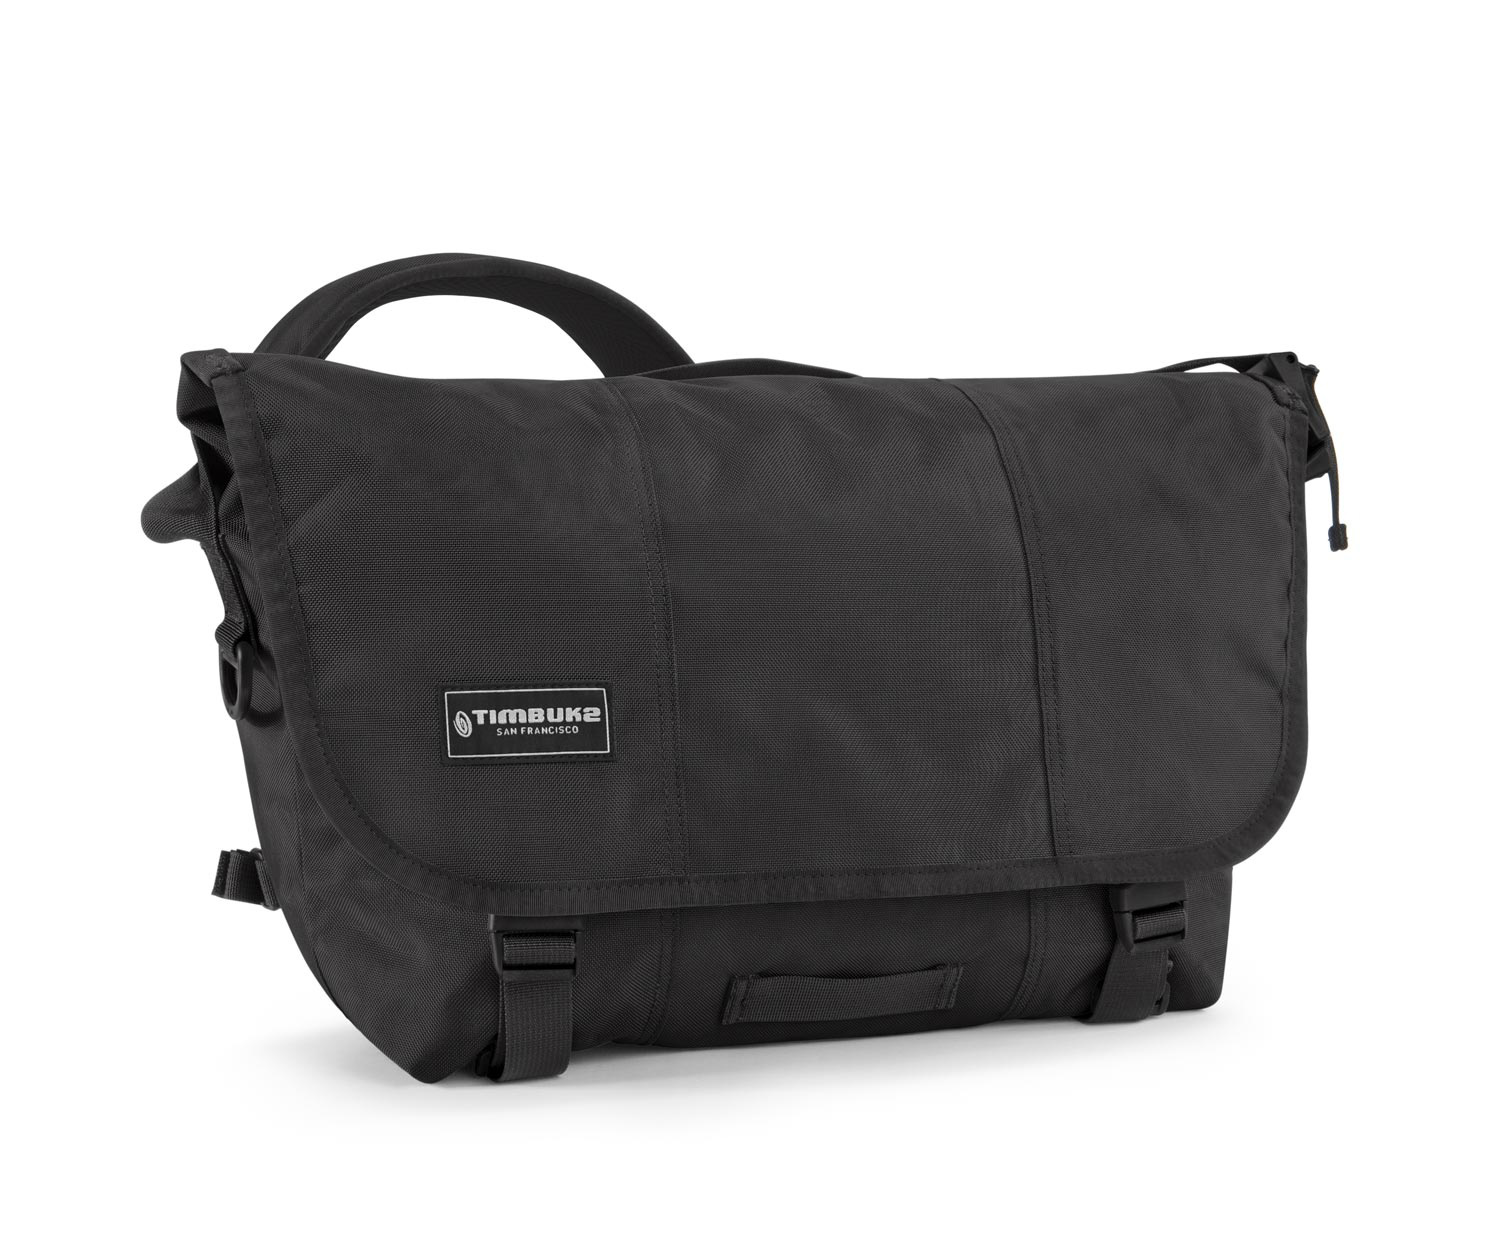 Timbuk2 Shoulder Bag Classic Messenger Medium - Black